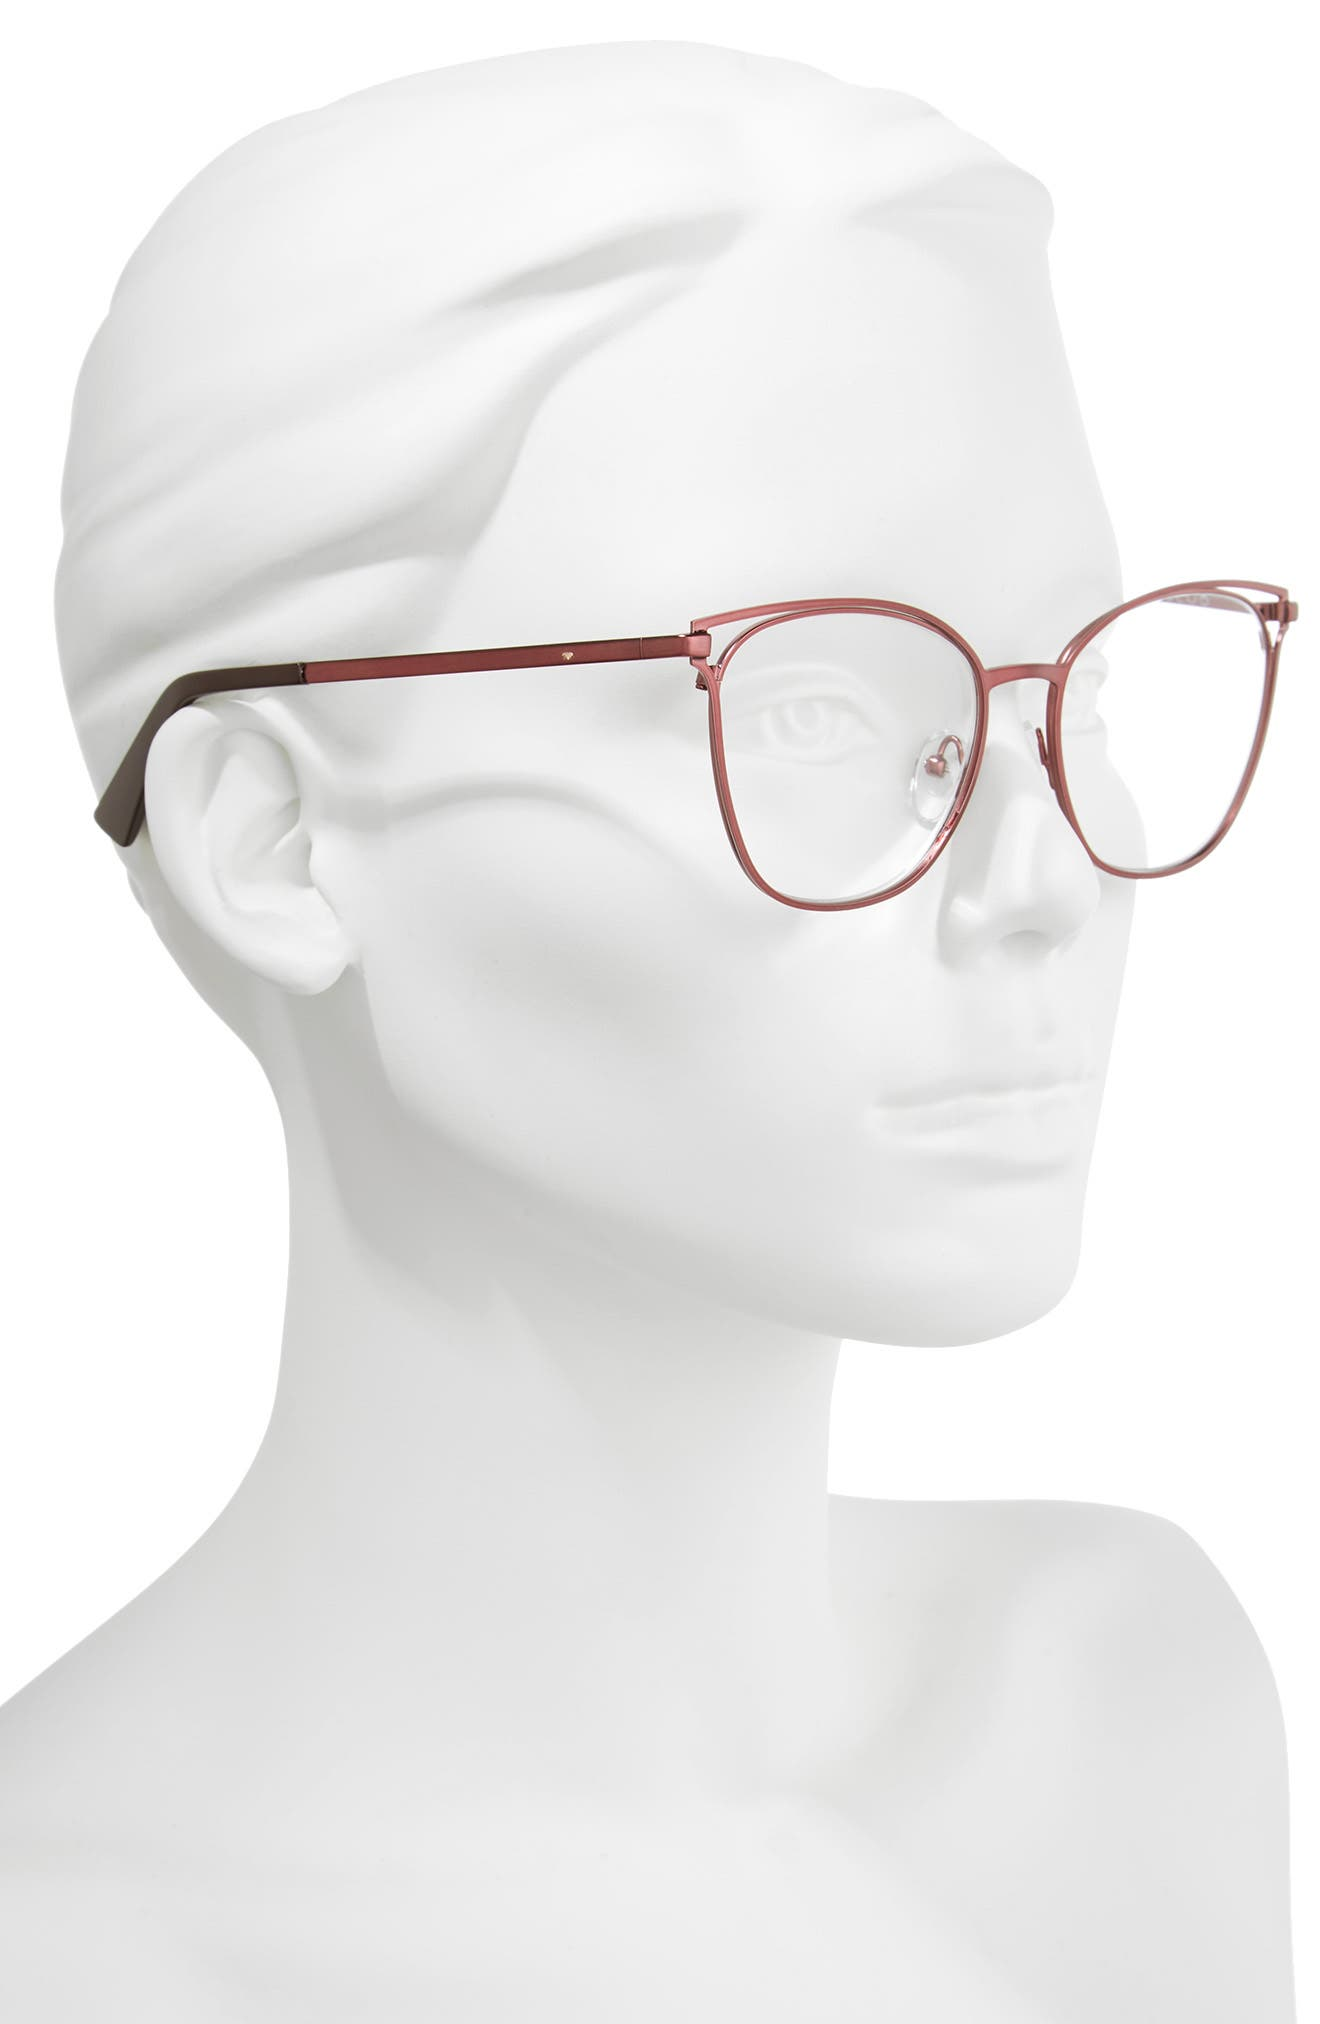 The Dutiful And The Scammed 53mm Reading Glasses,                             Alternate thumbnail 2, color,                             Wine